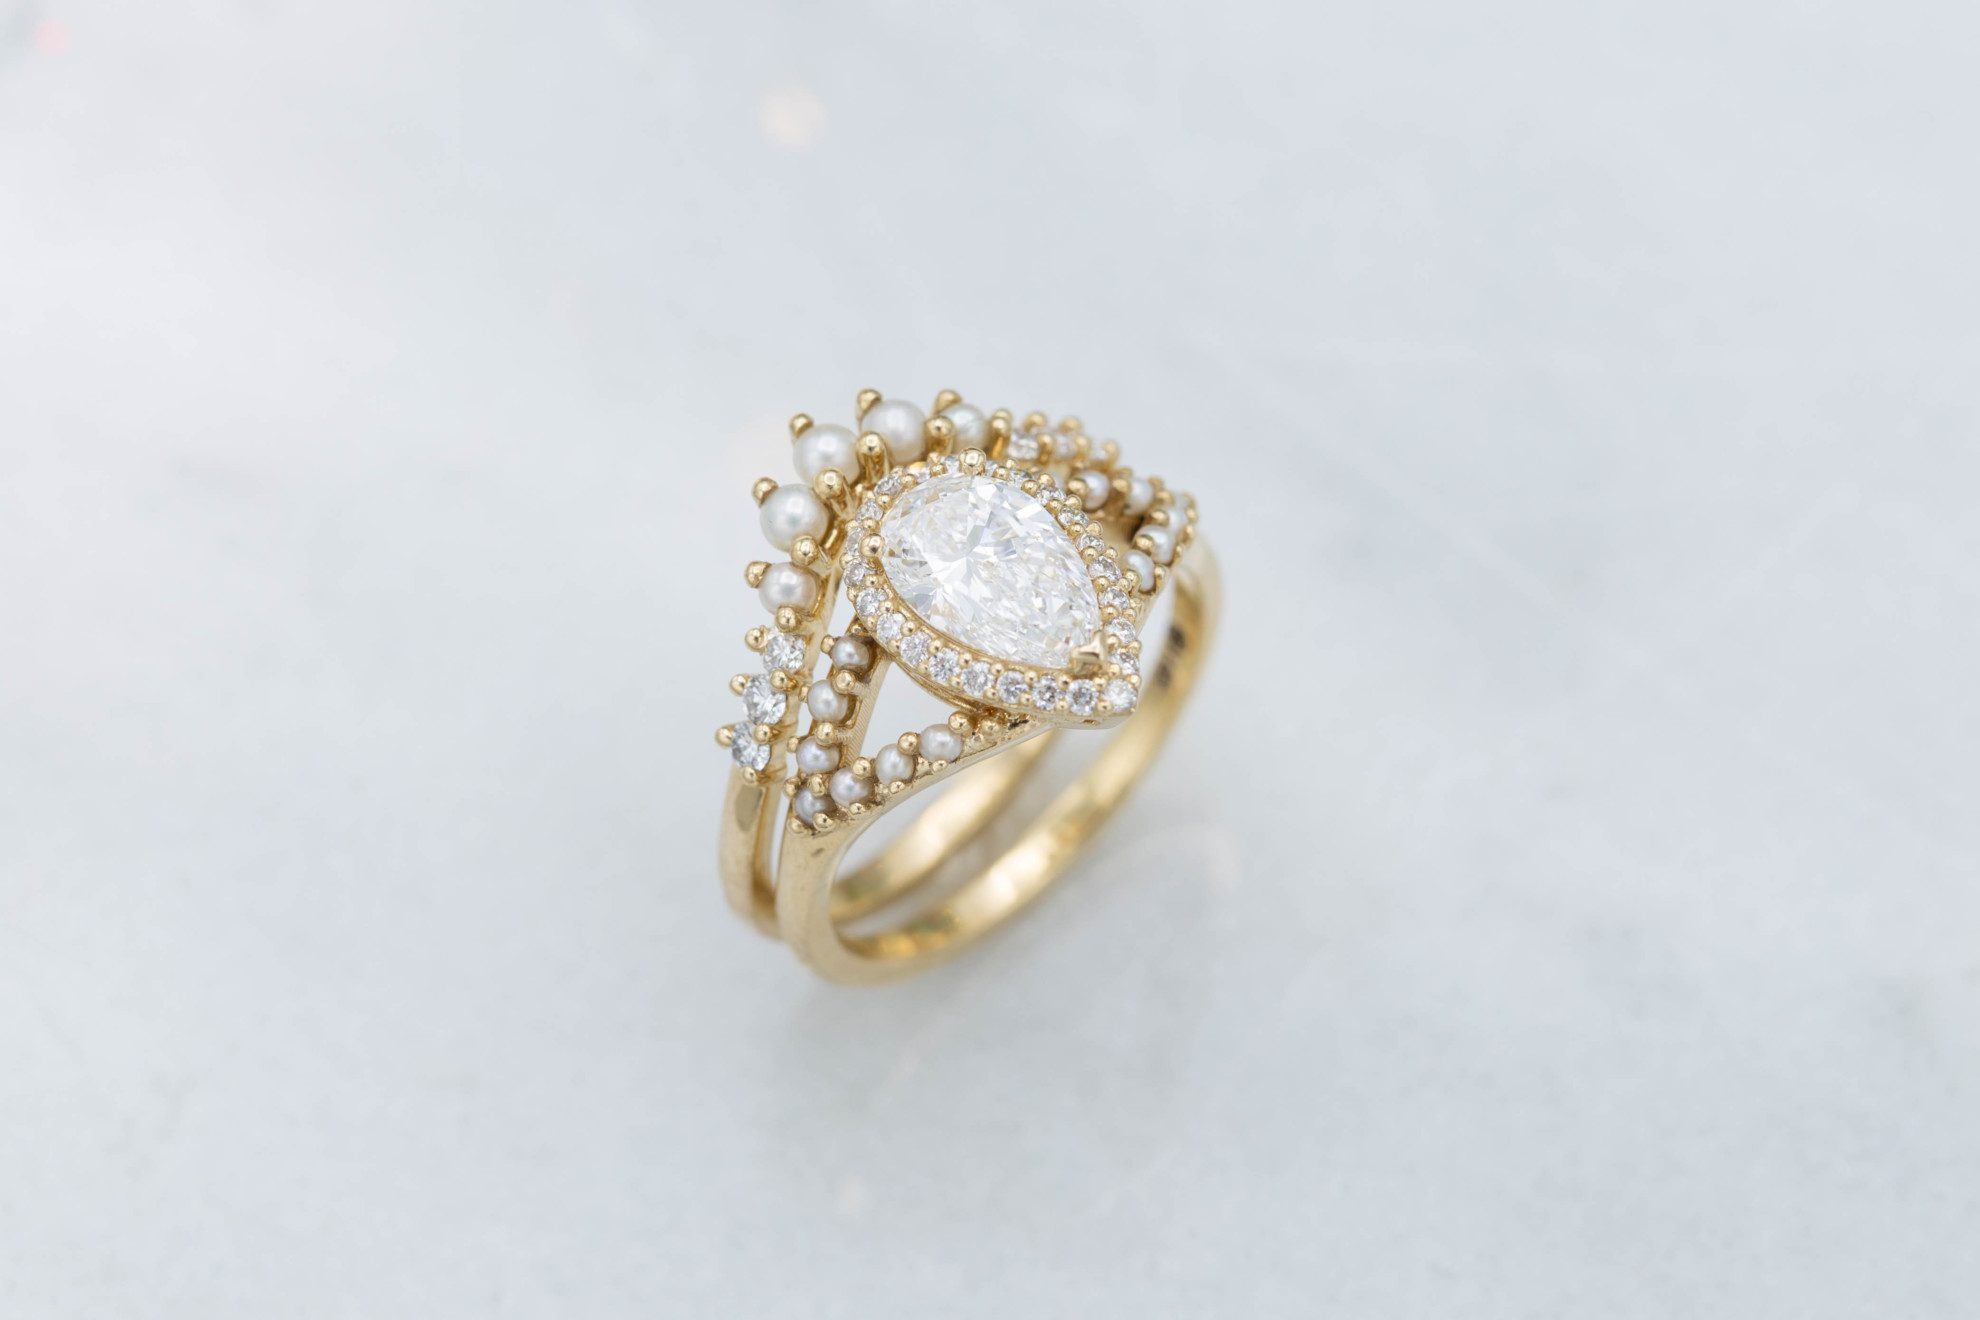 pear-shape with split shank and seed pearls - engagement ring setting